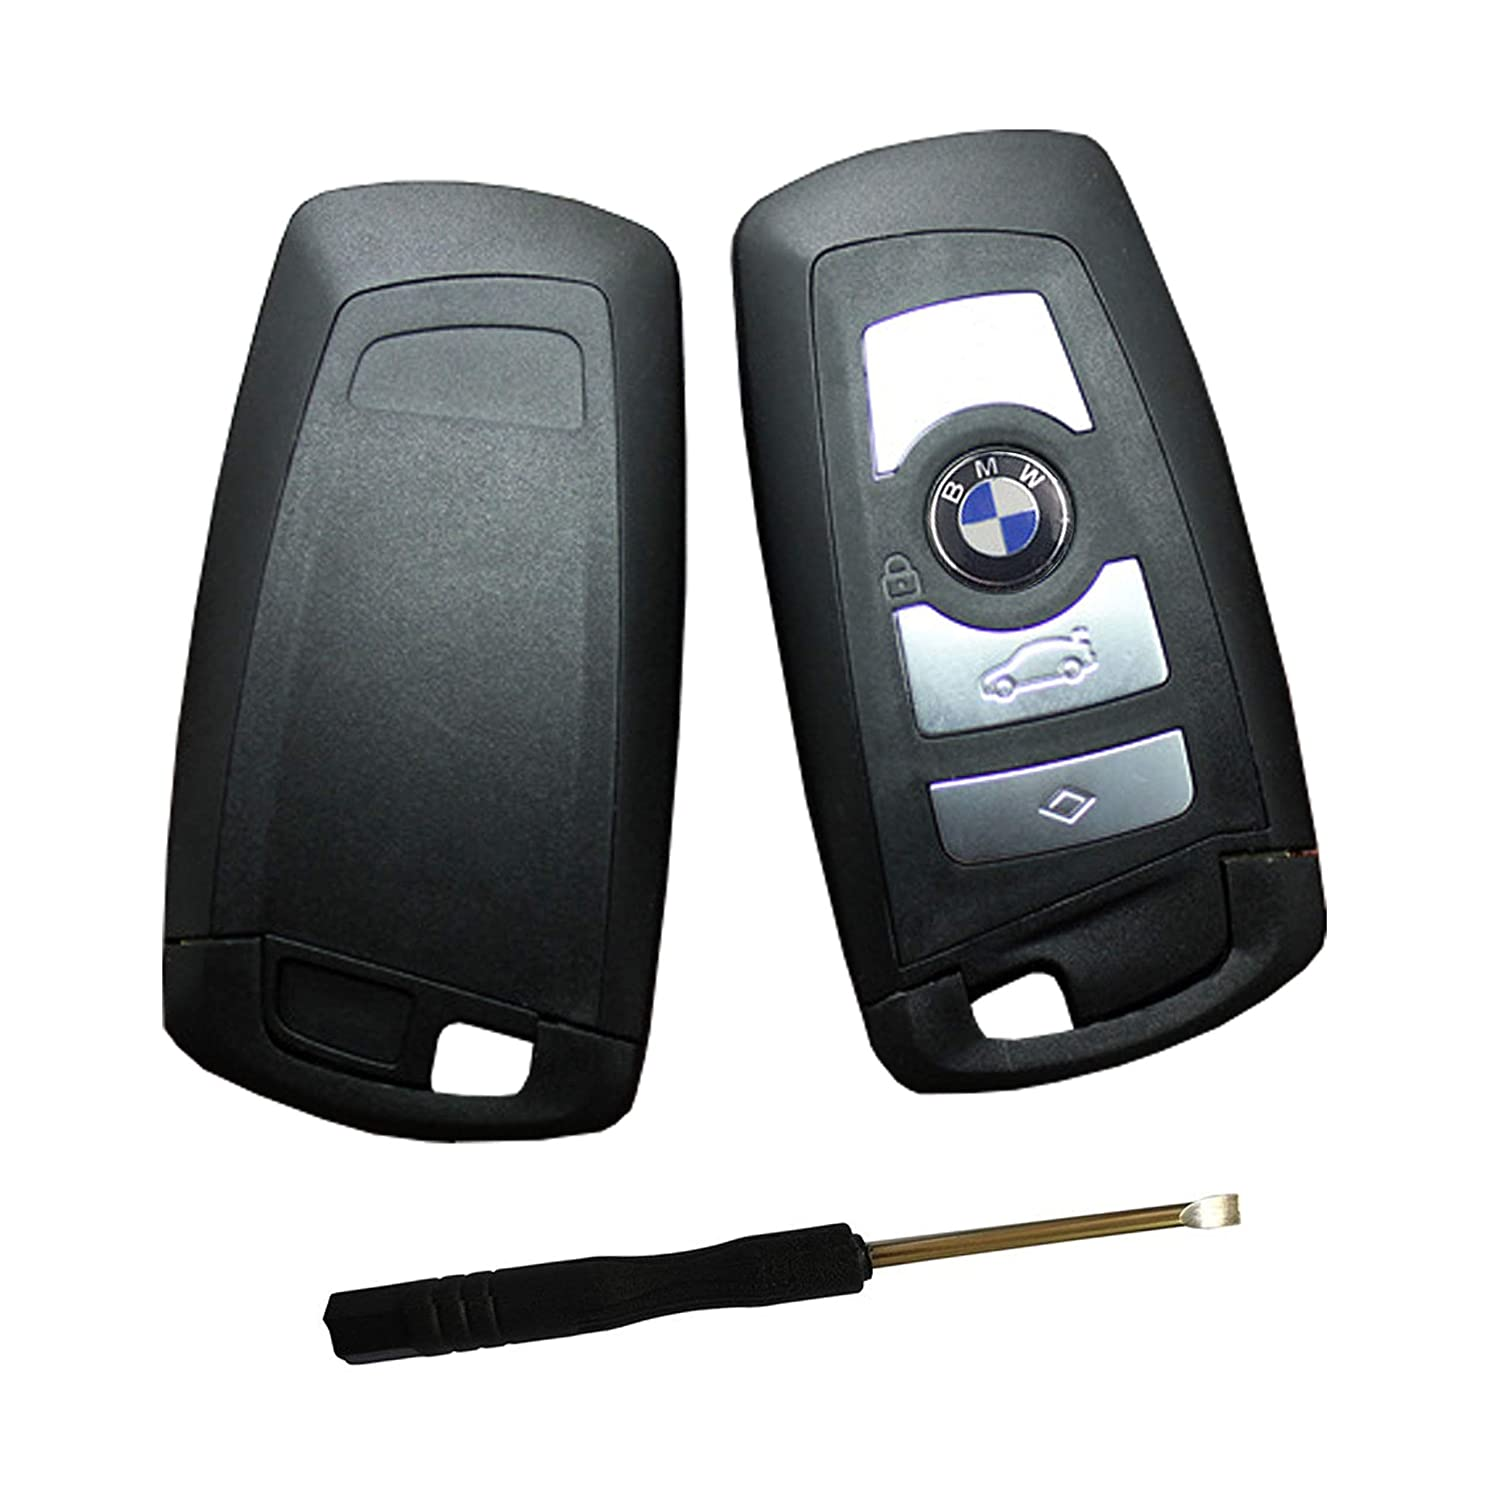 Bmw Key Fob Replacement >> Binowen The Best Keyless Entry Remote Key Fob Replacement For Bmw 1 3 4 5 6 7 F Series F10 235ix 320 Smart Key Fob Case